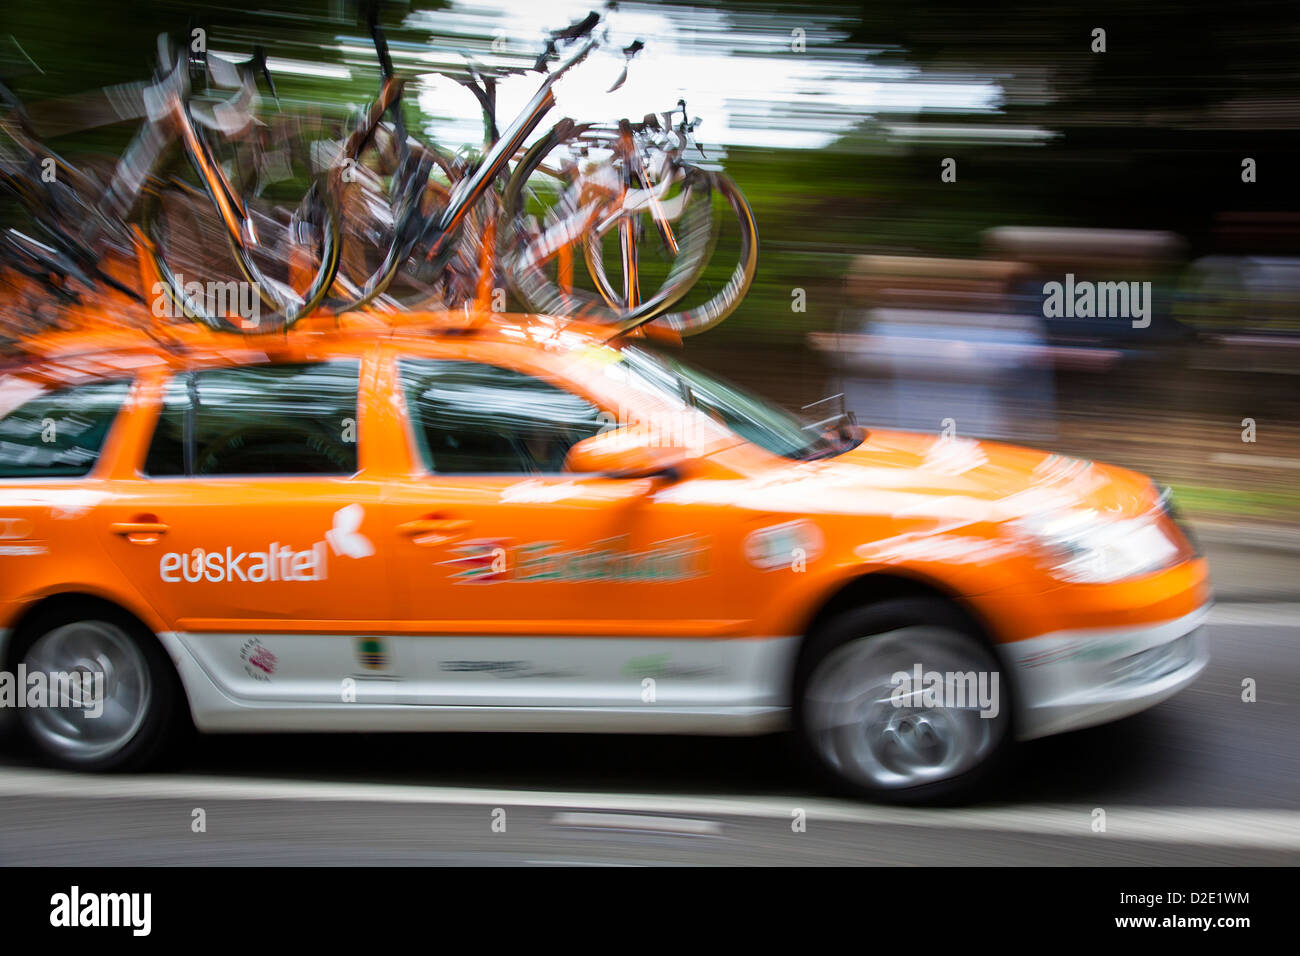 Cycle Team Support Car Tour Stock Photos & Cycle Team ...